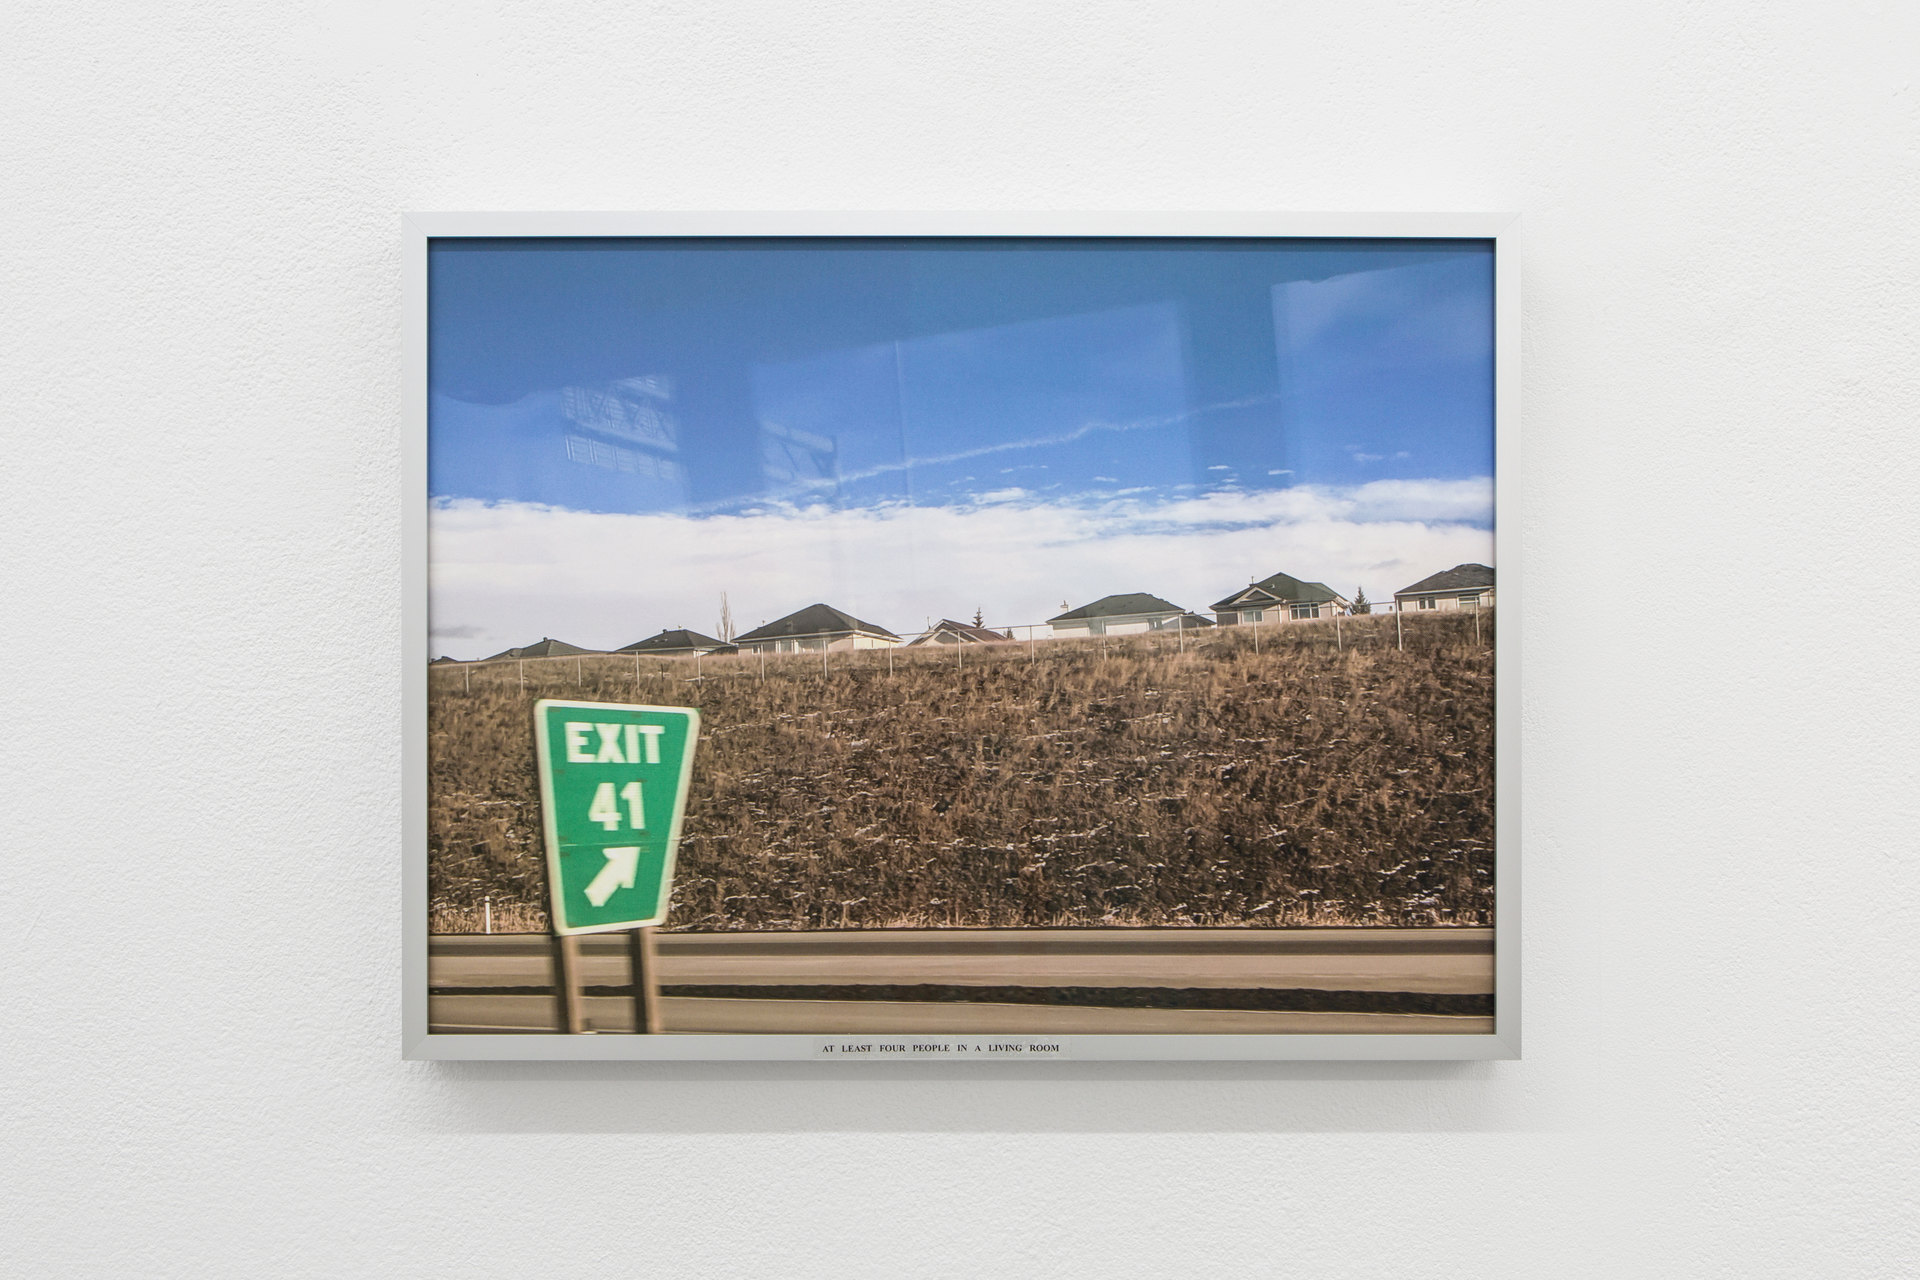 Rosa Aiello, 'Suspense', 2019, Digital print, photo rag paper, acetate film, glue, aluminium frames 31.2 x 41.2cm, Cell Project Space